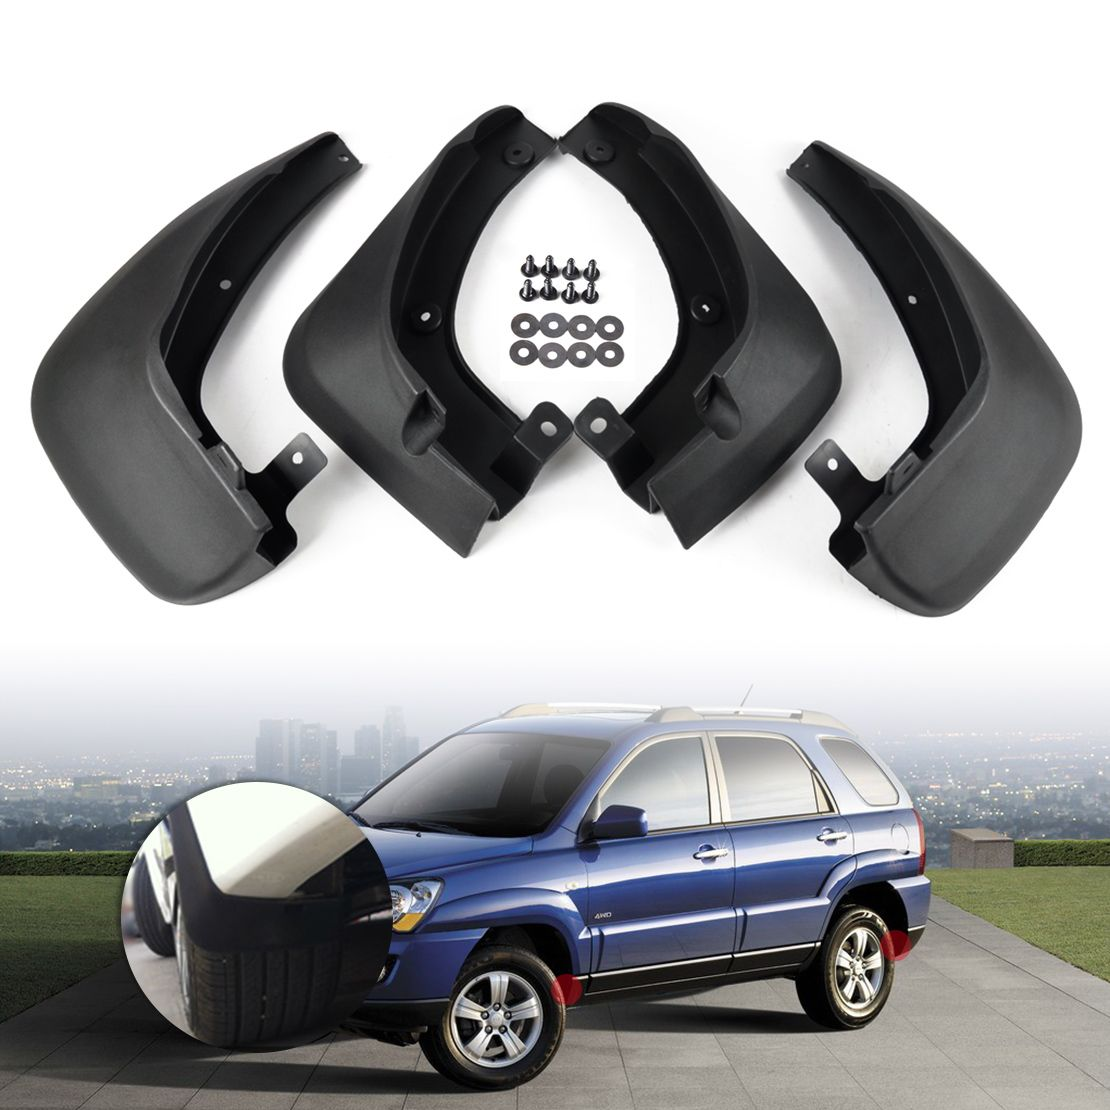 DWCX 4pcs Mud Flaps Splash Guards Mudguard Mudflaps Fenders For KIA Sportage 2005 2006 2007 2008 2009 2010